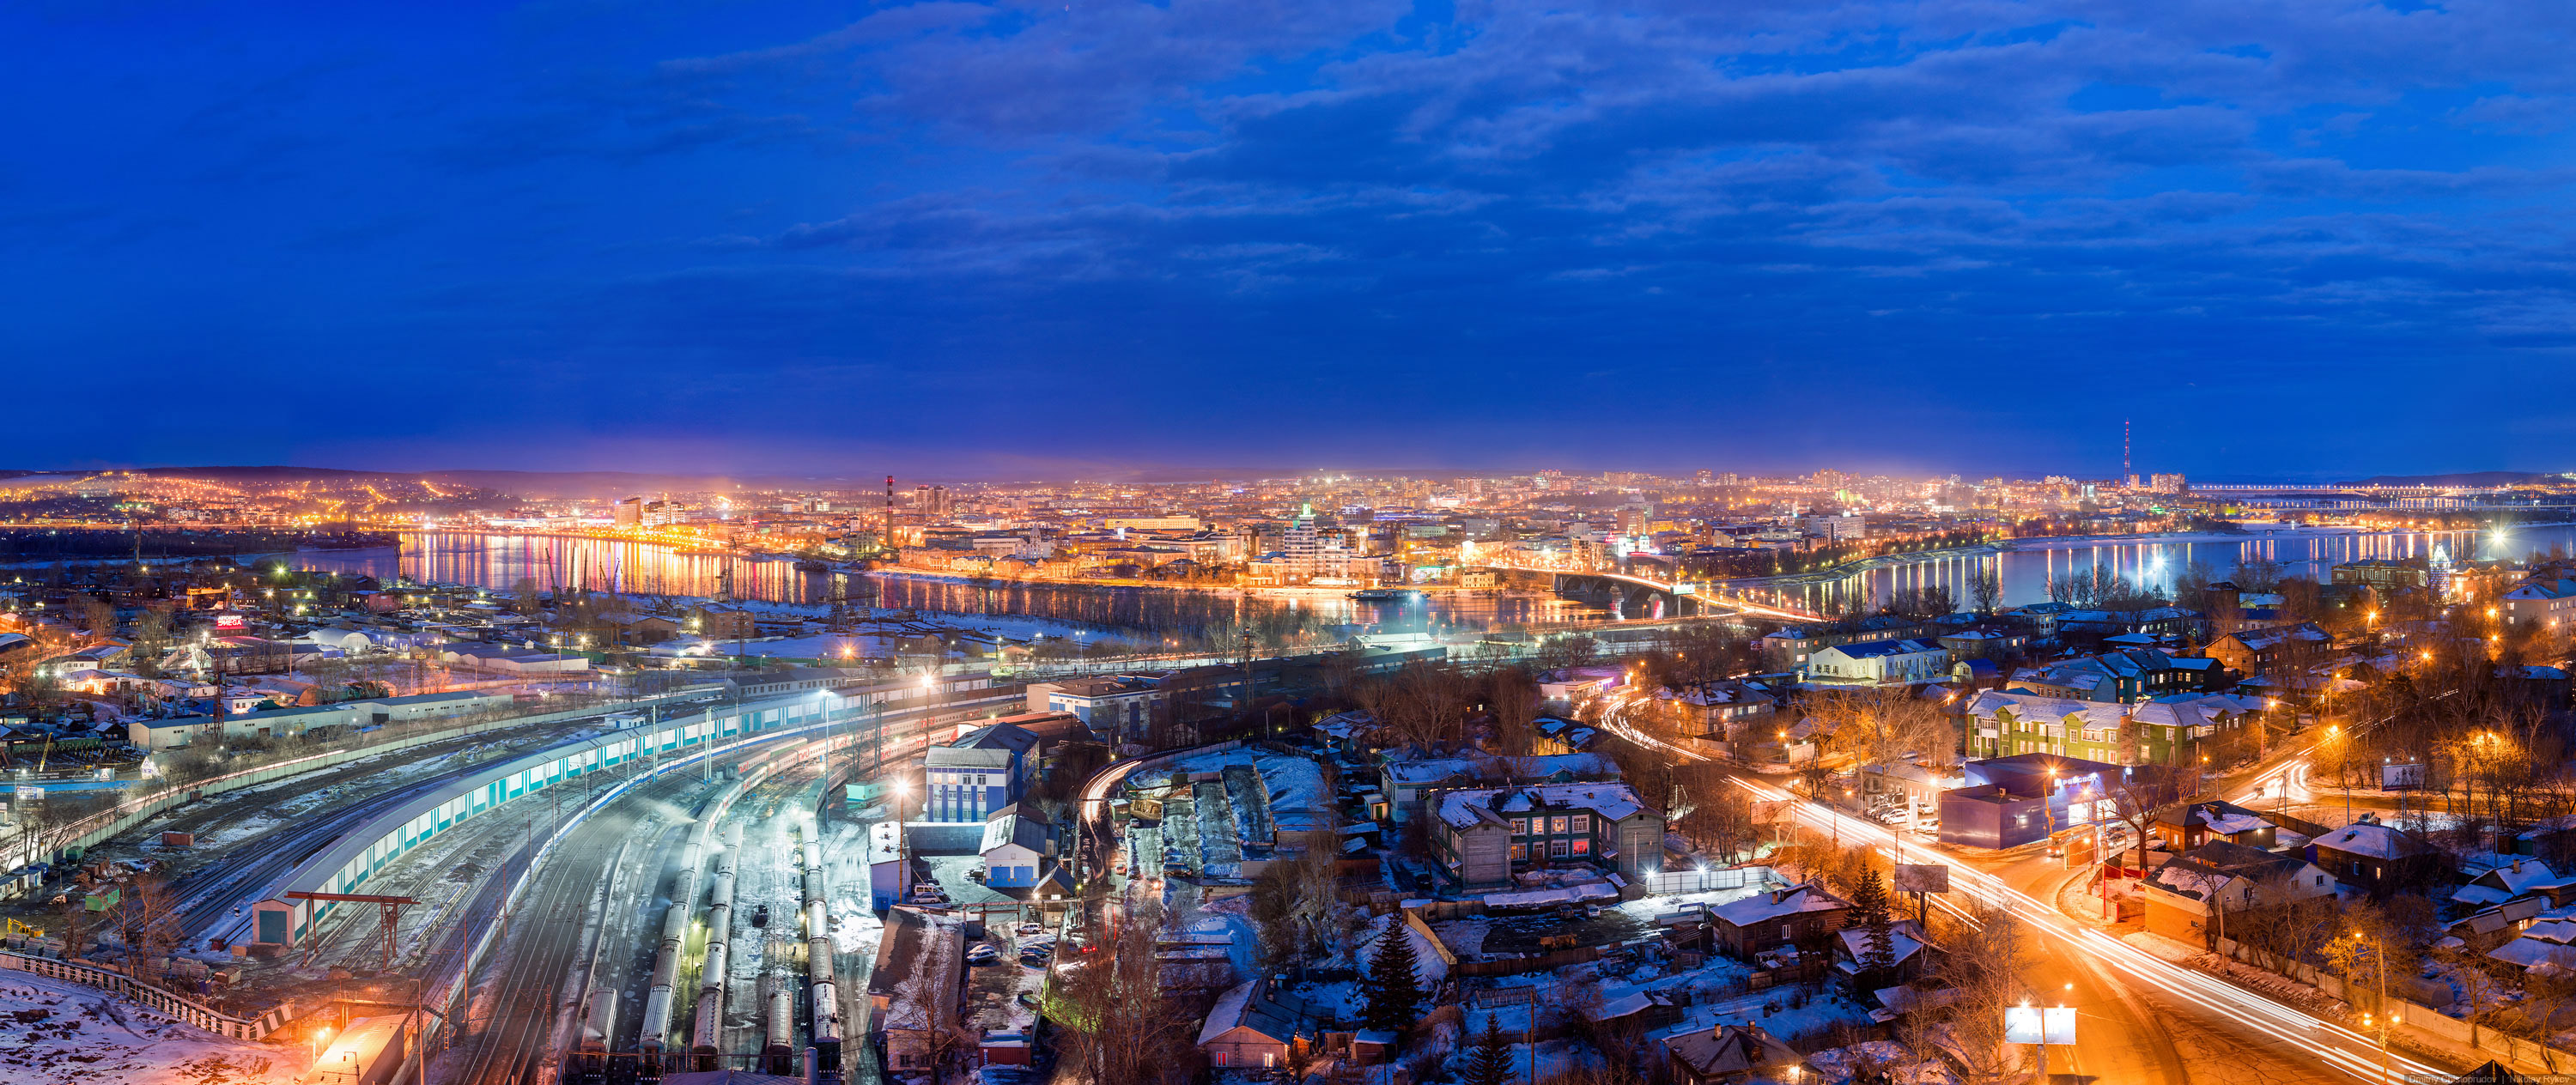 Irkutsk: A nice and at the same time a harsh cold Siberian city - 36